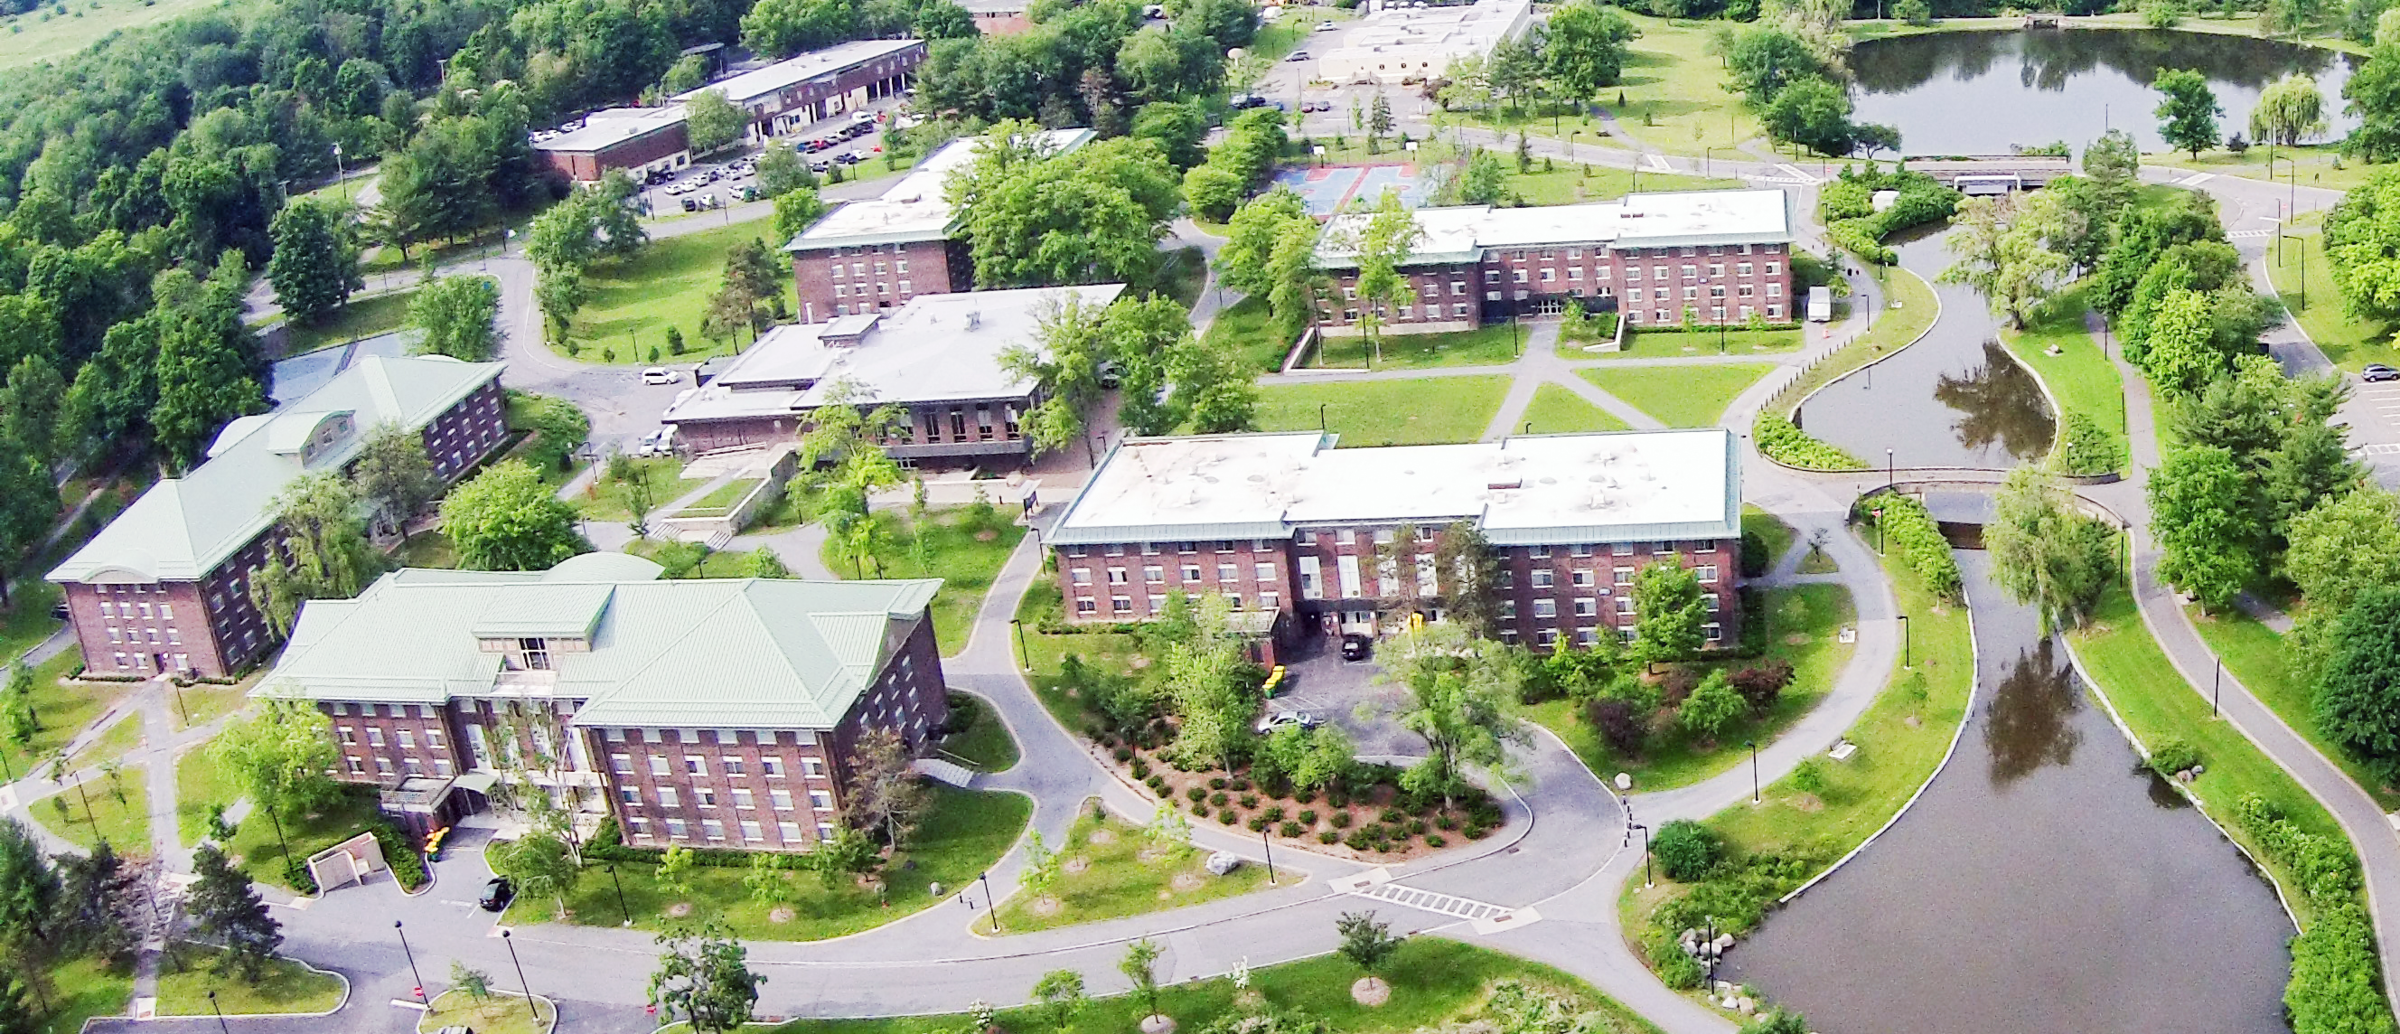 SUNY New Paltz President: Renaming Buildings Would Be Anti-Racist ...